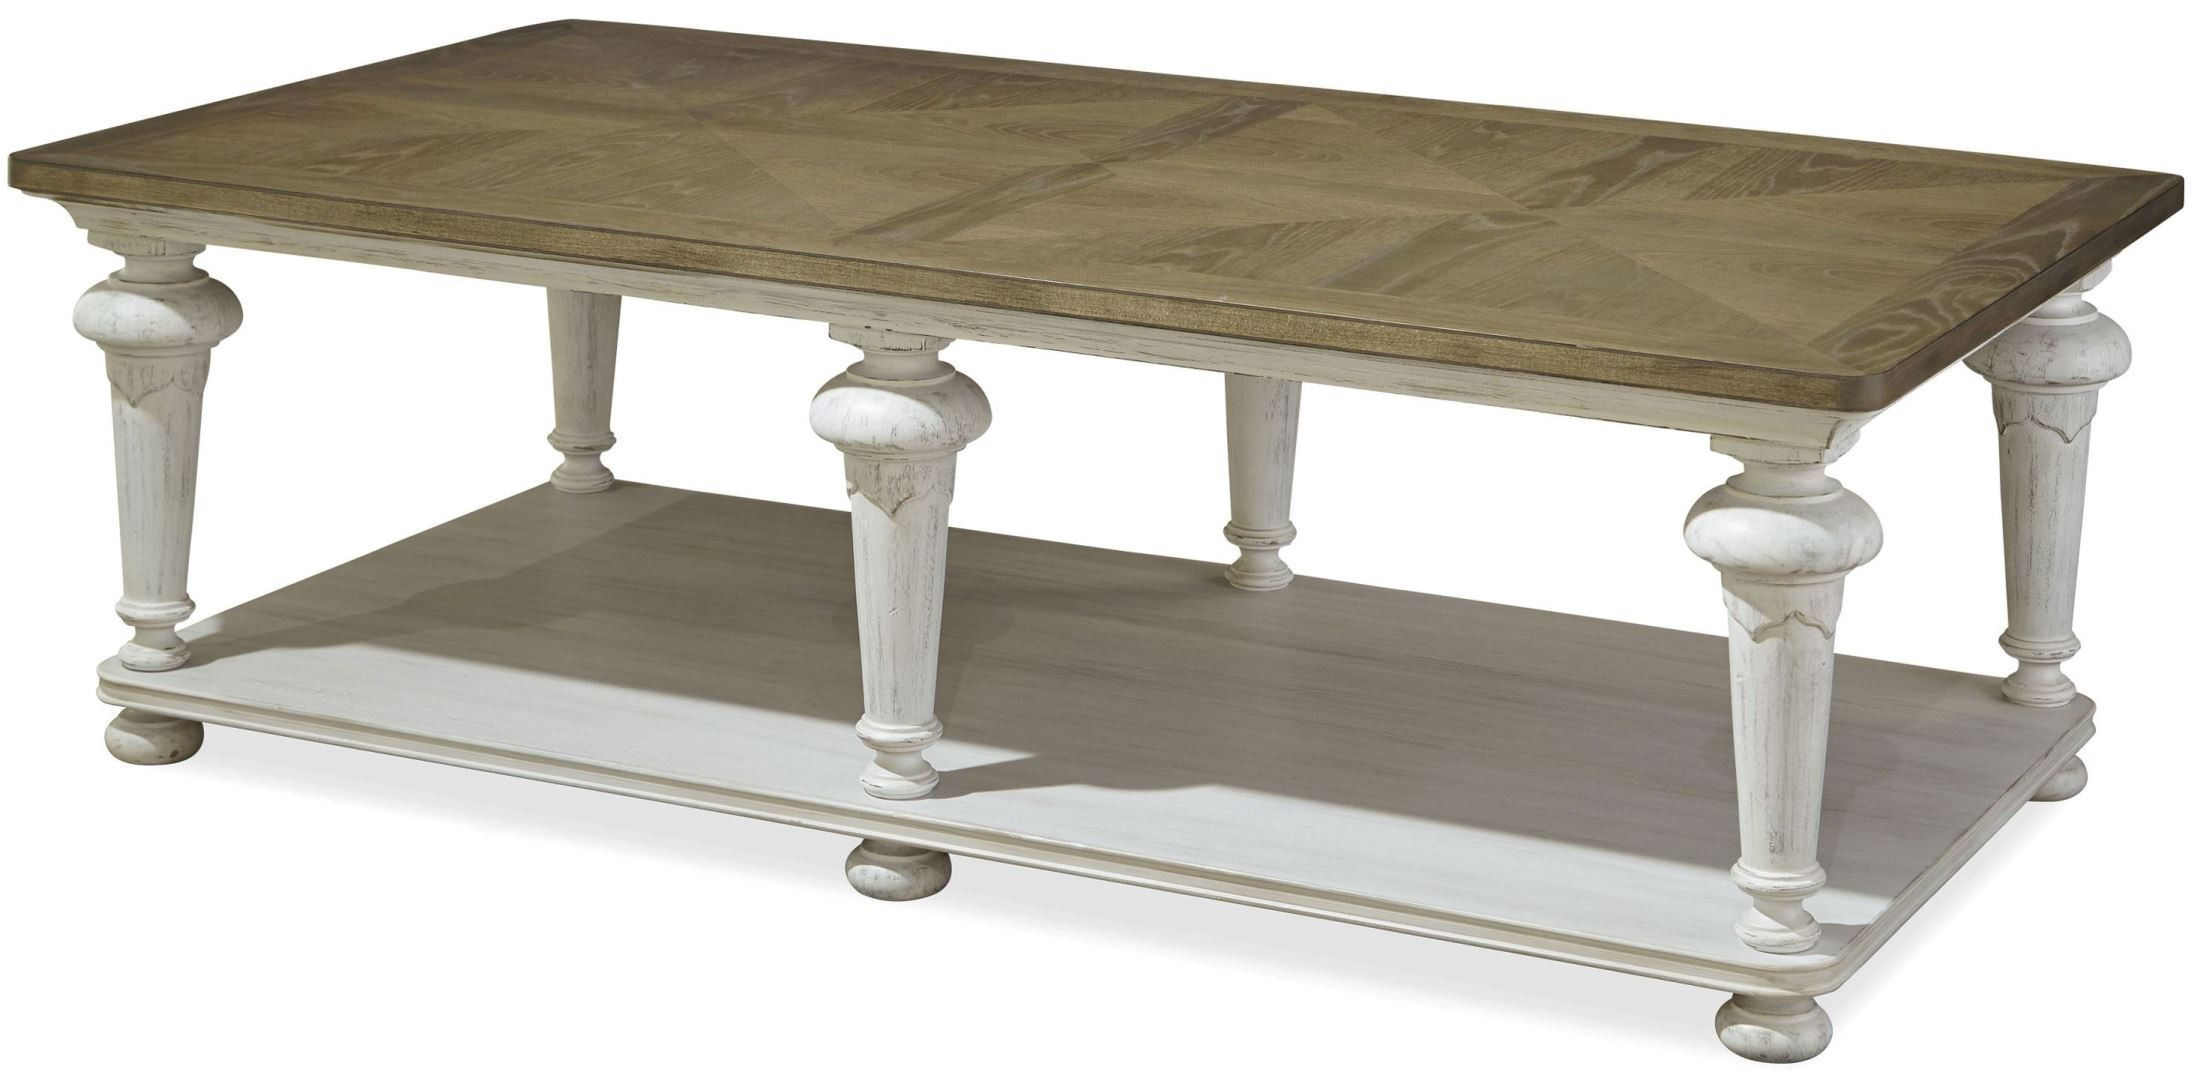 Dogwood Blossom Cocktail Table From Paula Deen 597a801 Coleman Furniture